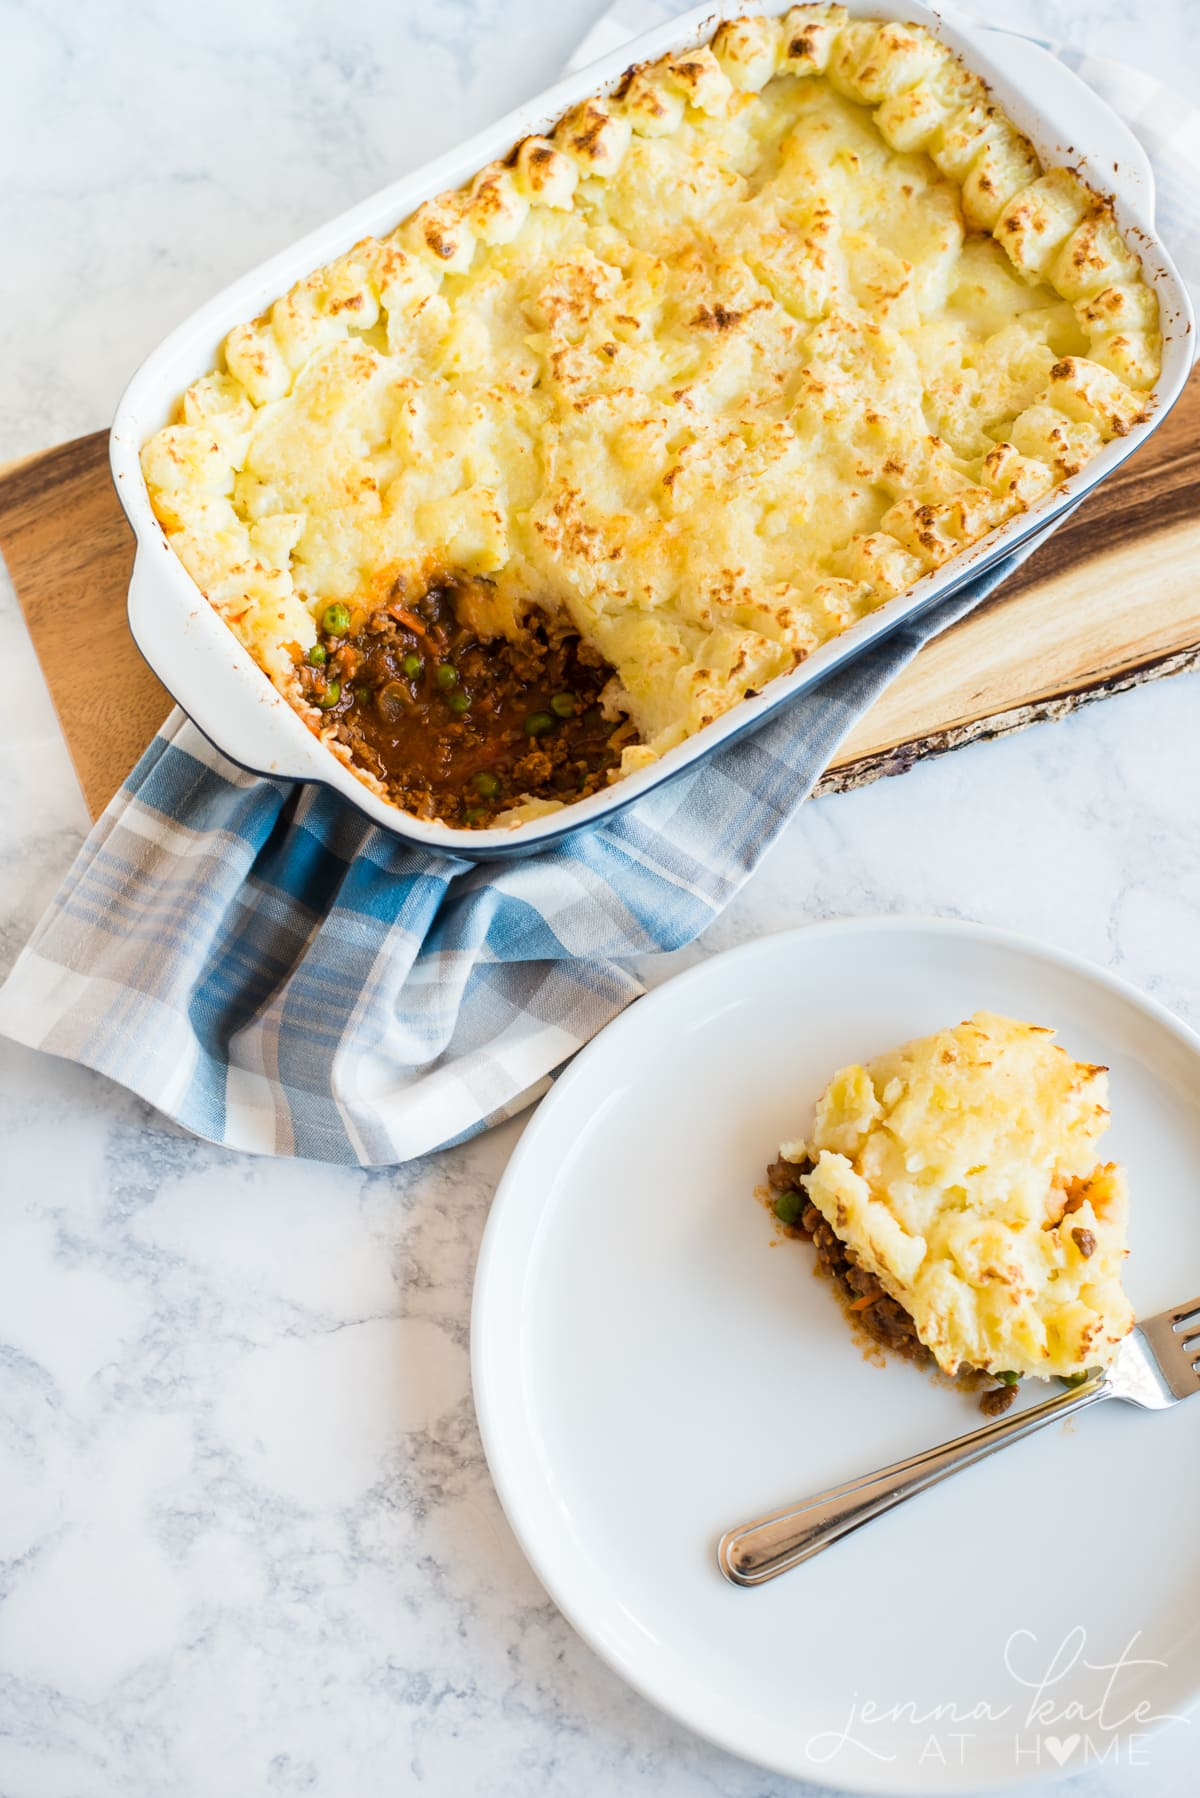 Shepherd's Pie is a great Irish dinner for St. Patrick's Day